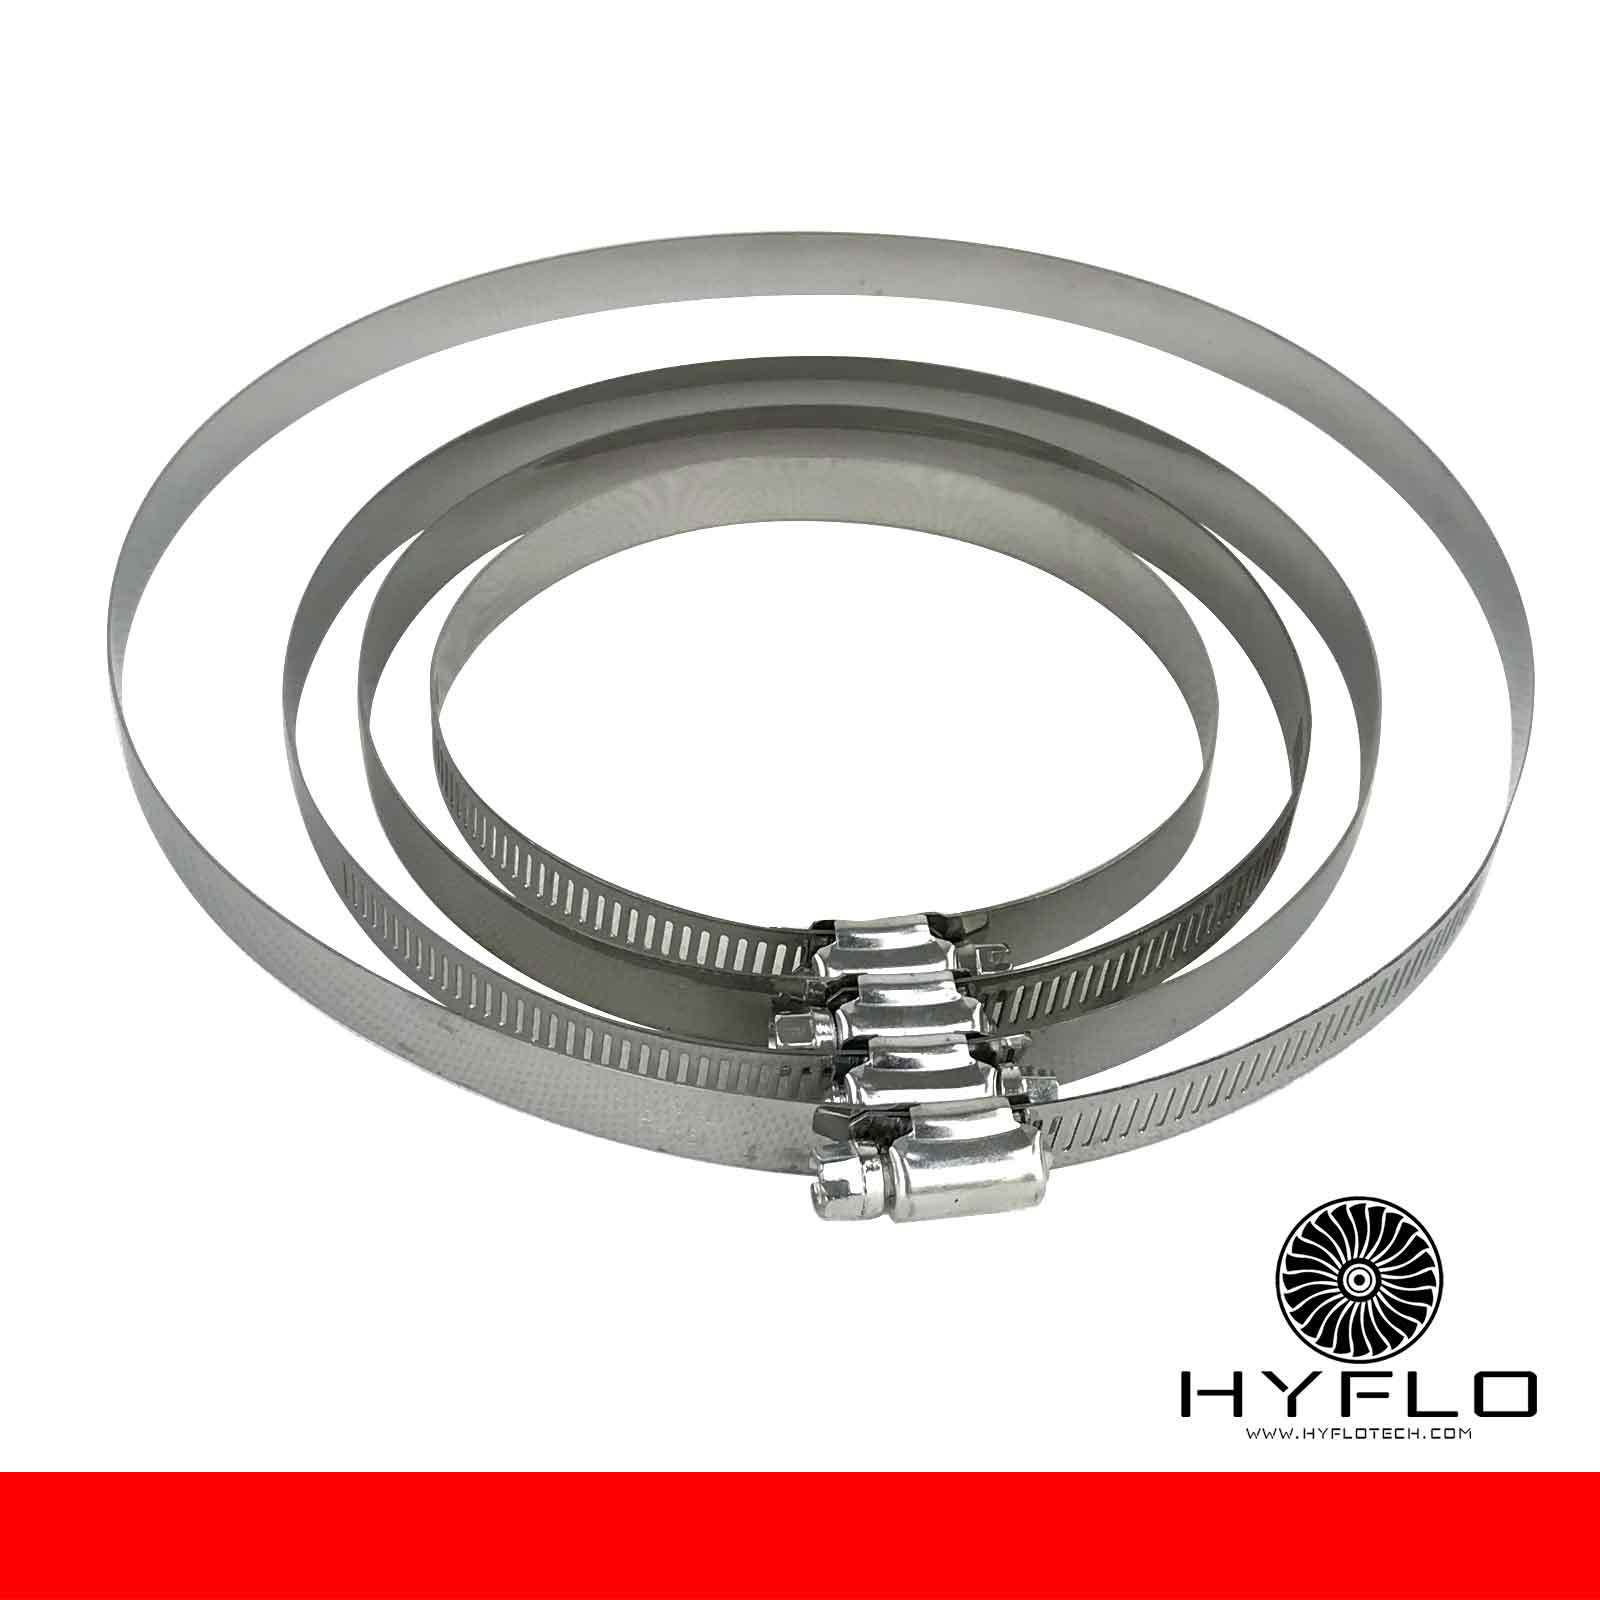 HyFlo 6 Inch 150mm Carbon Filter Exhaust Ventilation Kit Odour Control Combo